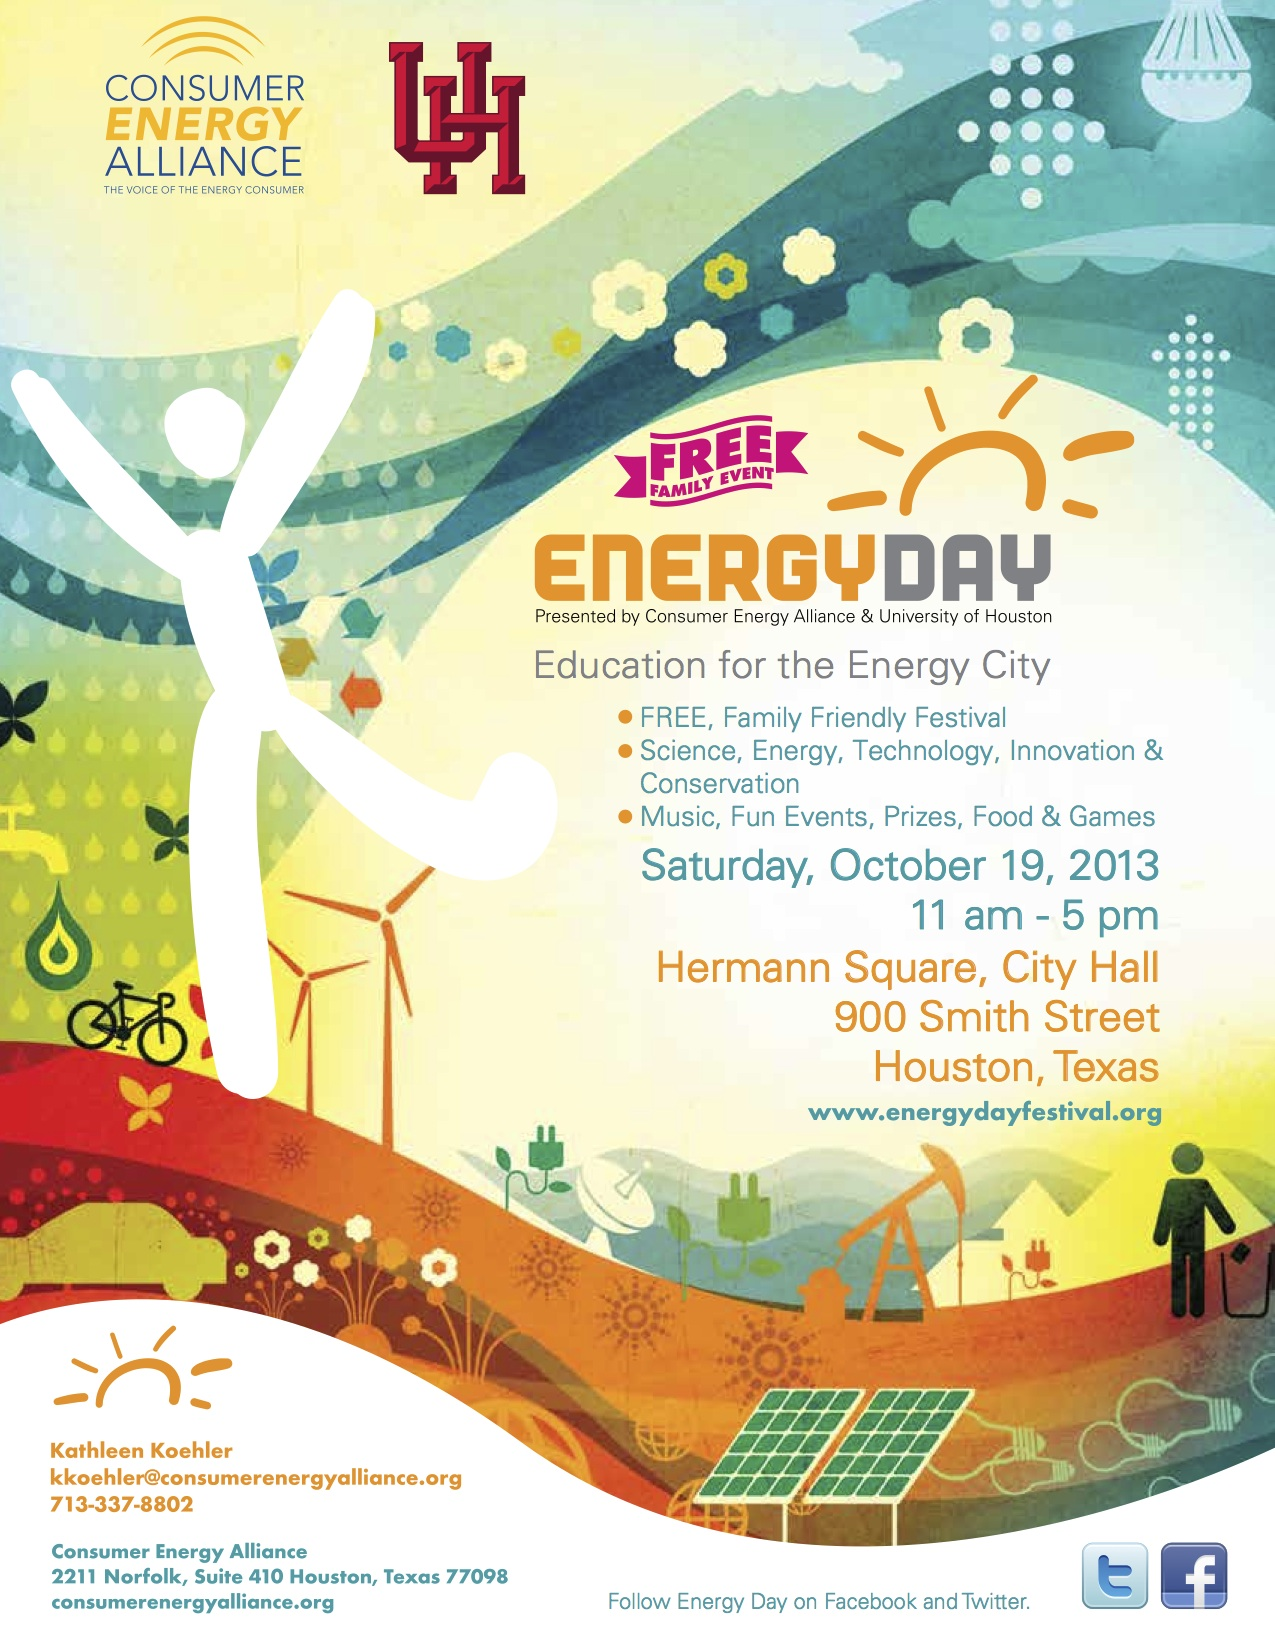 Save The Date: Join Just Energy At The Energy Day Festival